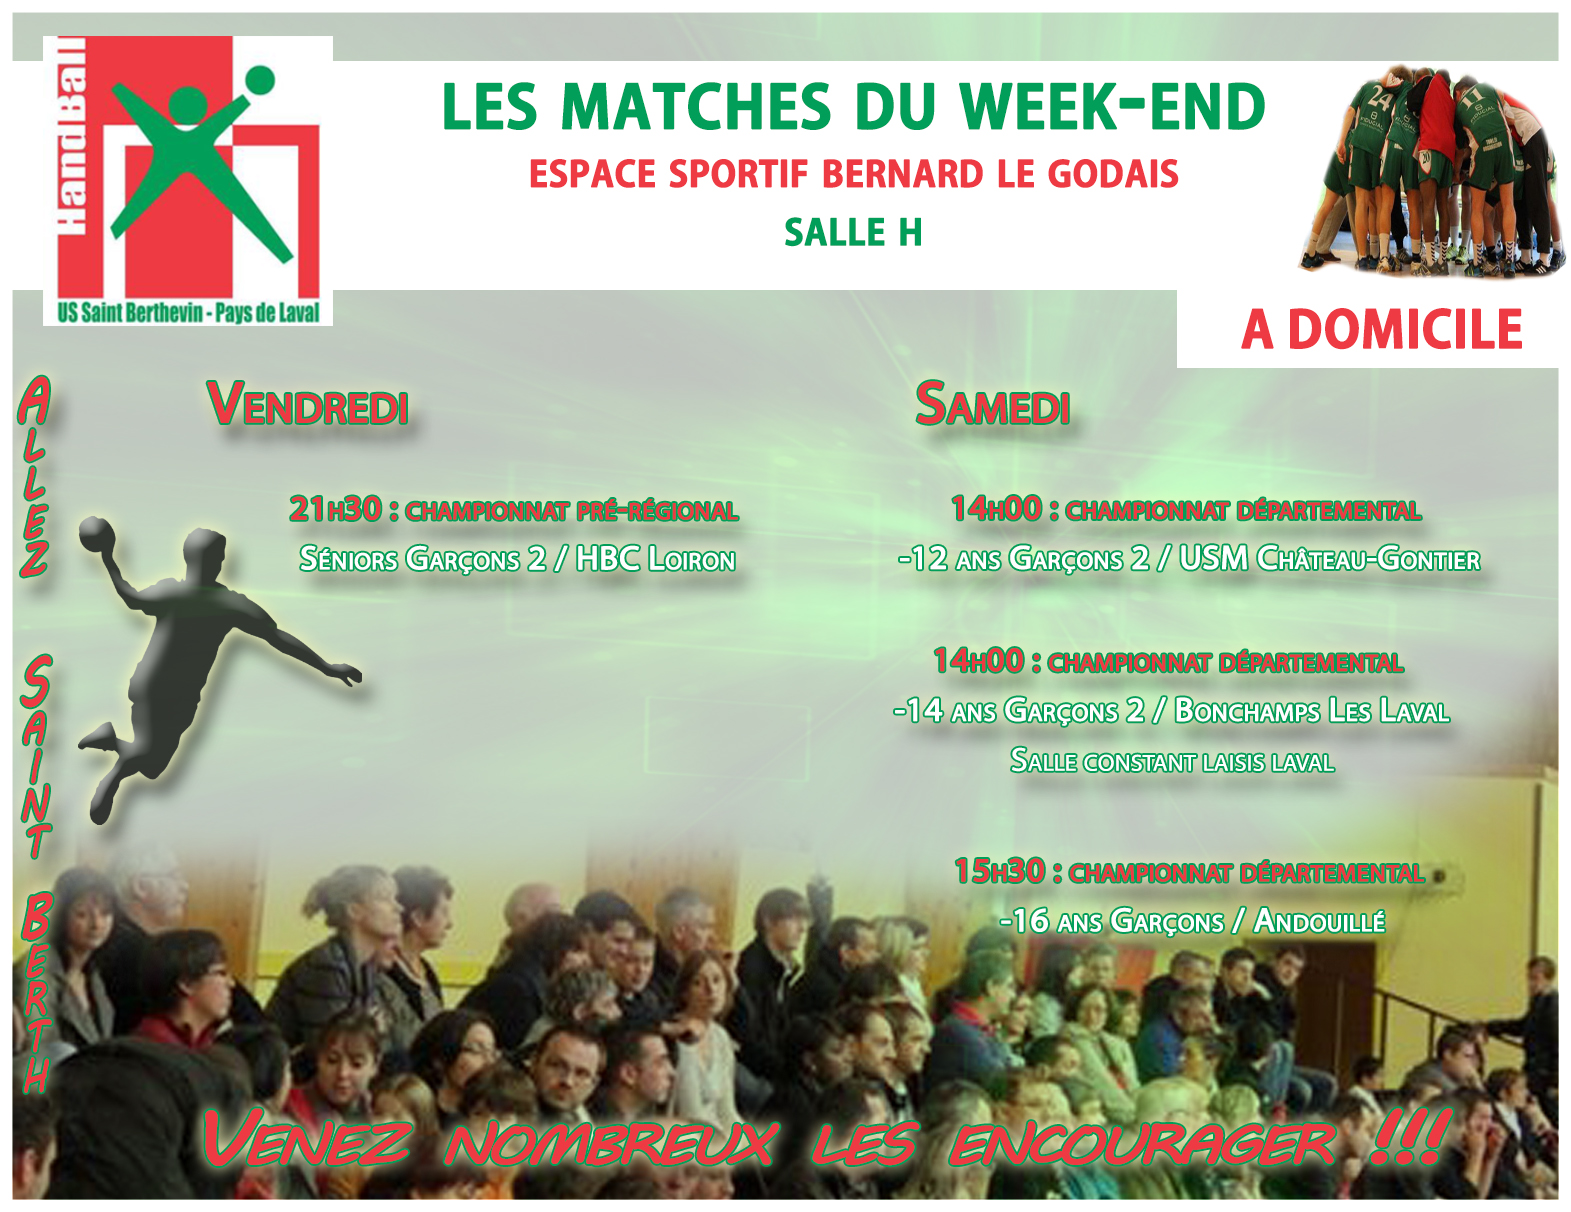 LE PROGRAMME DU WEEKEND DU 29/04/2017 A DOMICILE